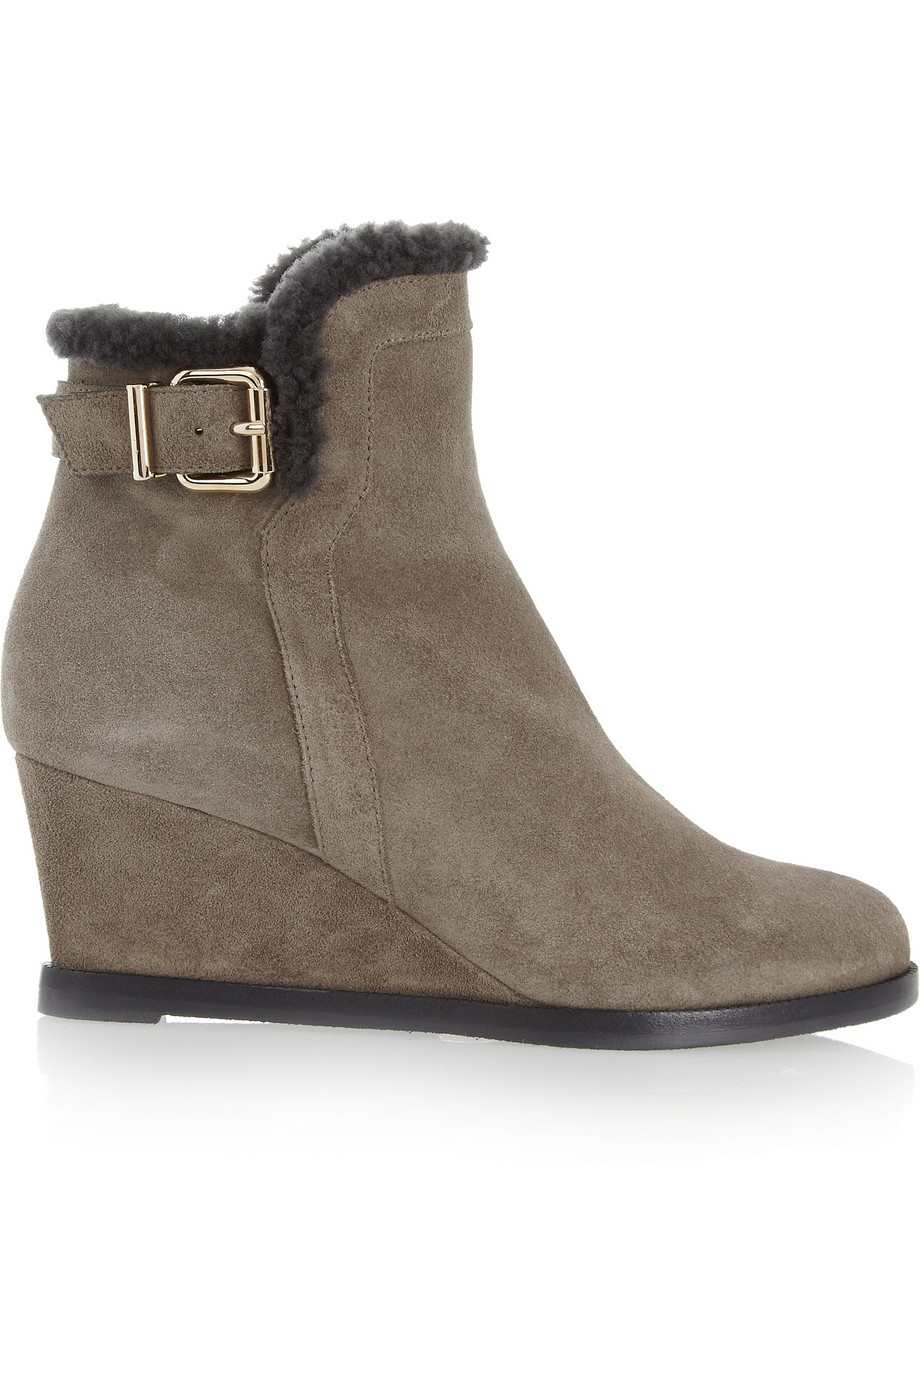 Fendi - Bottines (750 €)